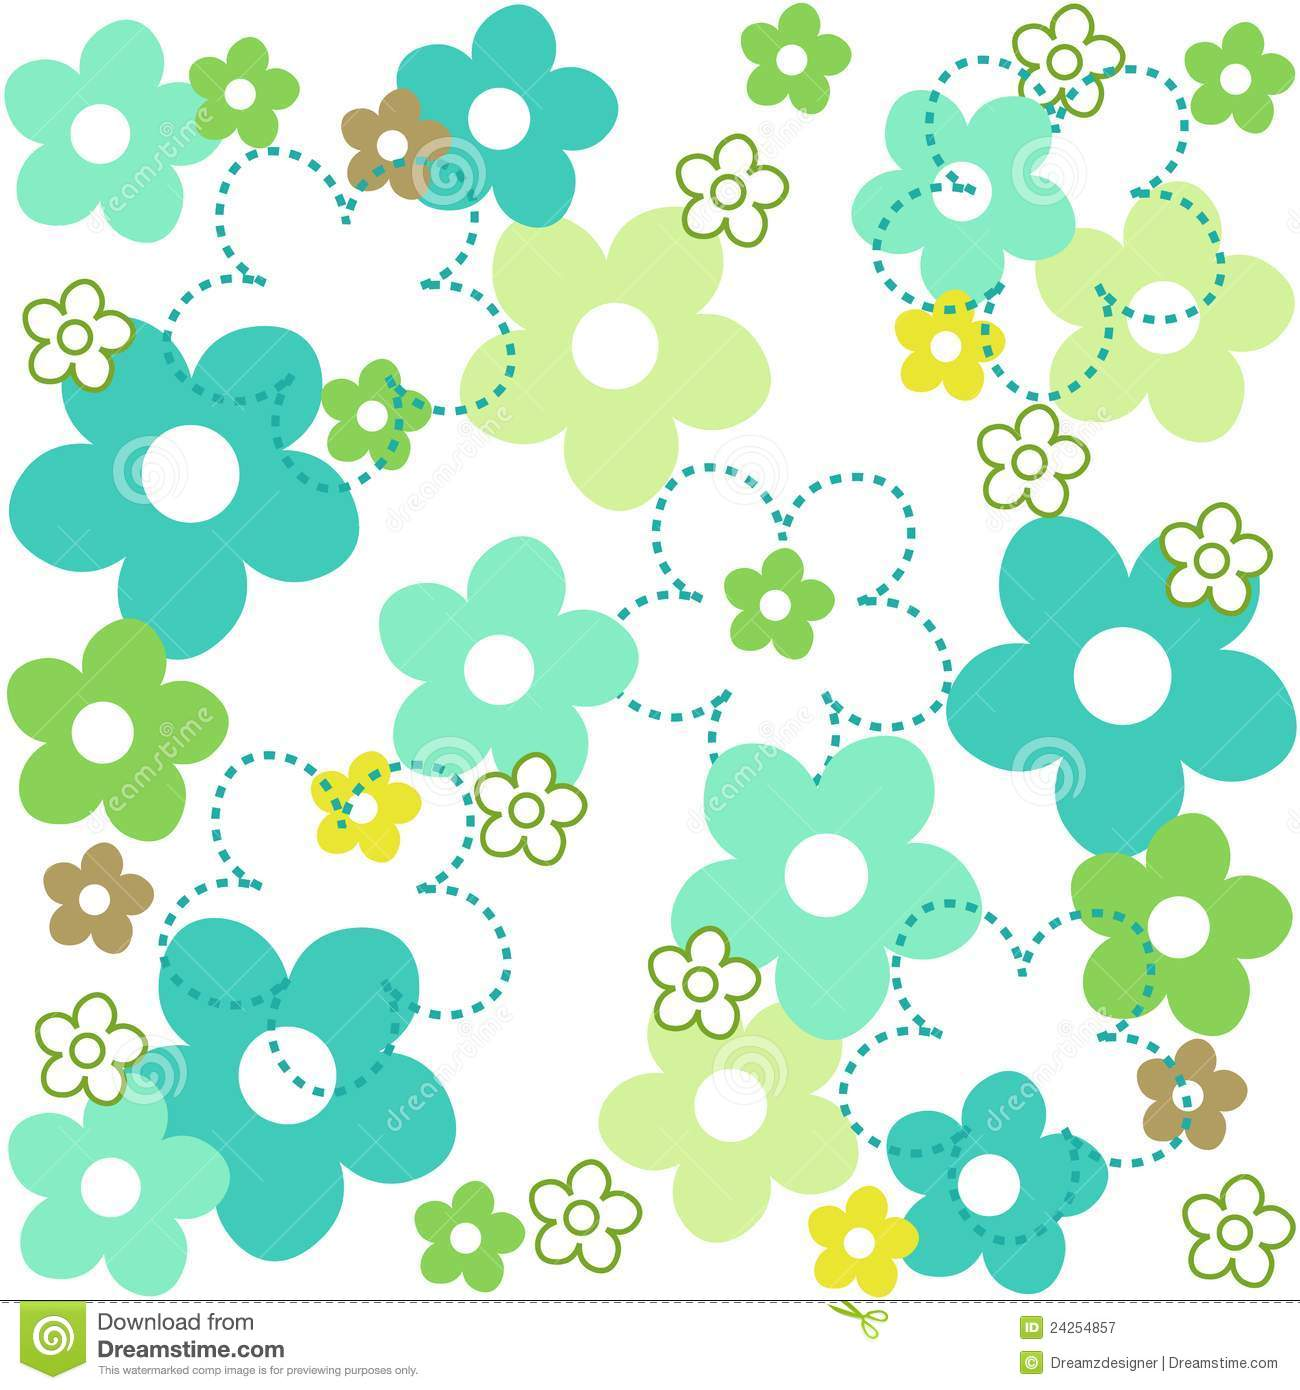 More similar stock images of flower pattern